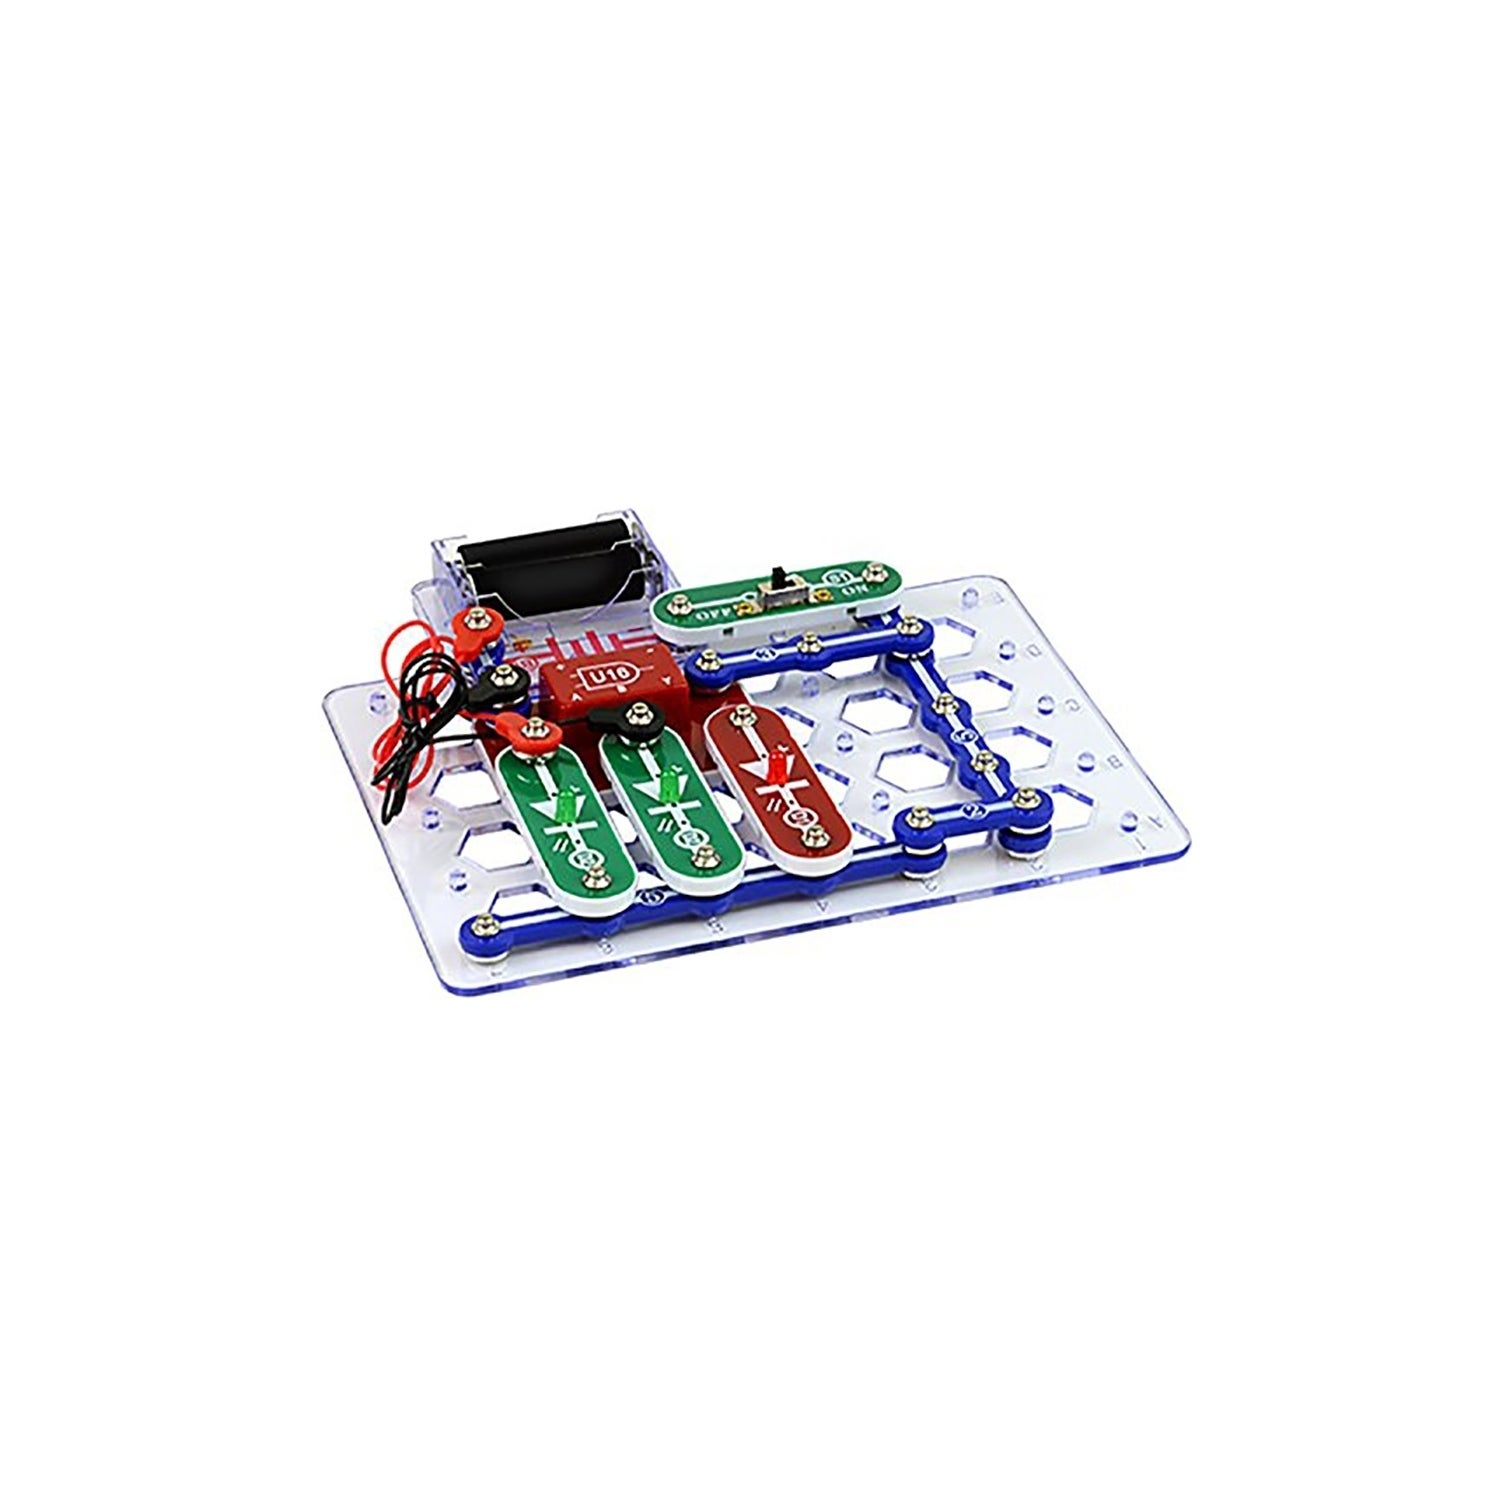 Shop Snap Circuits Digital Logic Gates Discovery Set Free Shipping Circuit Parts Today 22084463